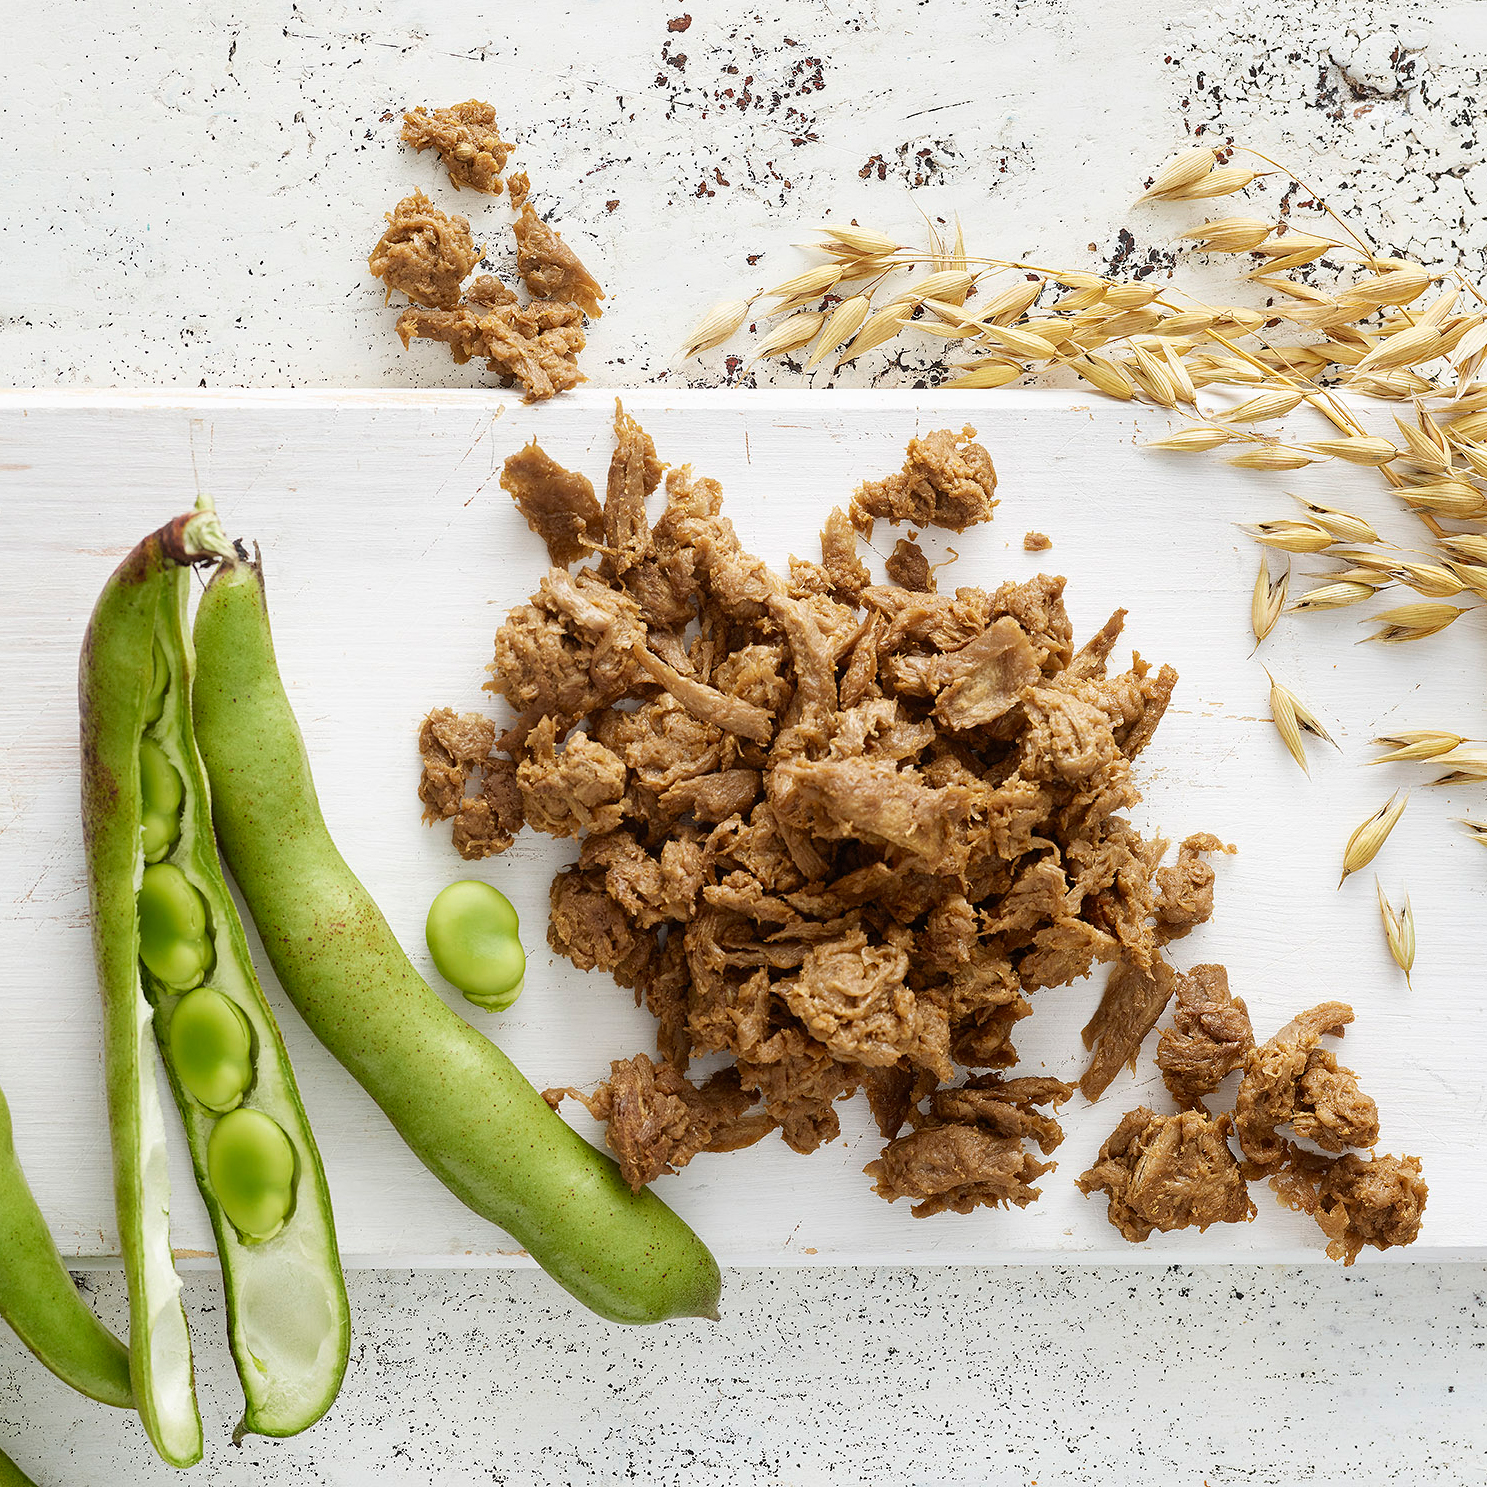 Pulled Oats Are the Newest Meat Substitute